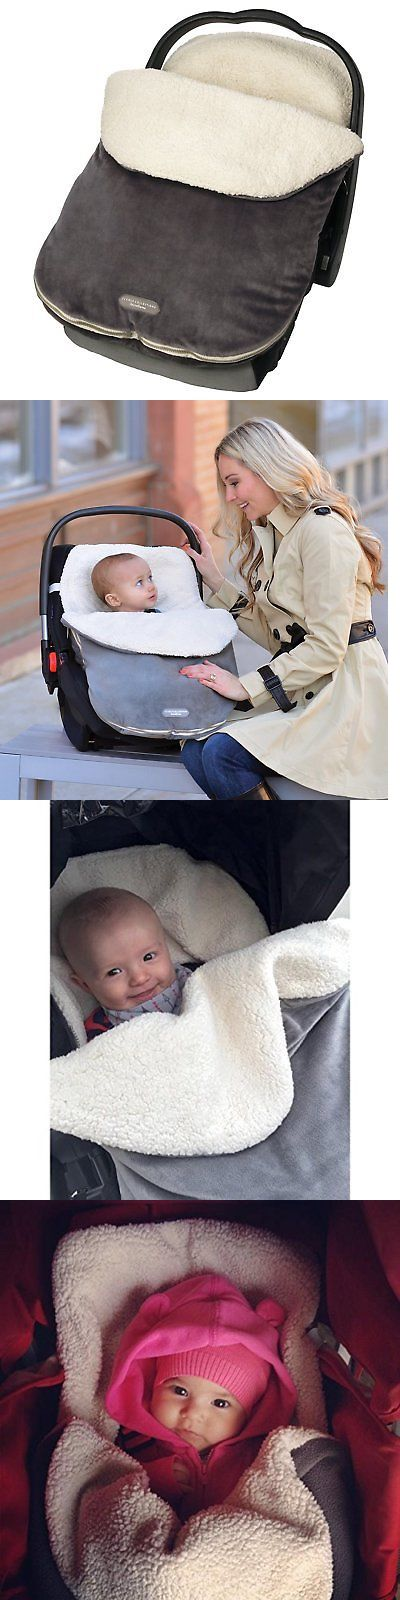 Car Seat Canopy Baby Infant Carseat Carrier Cover Warm Winter Bundle GRAPHITE